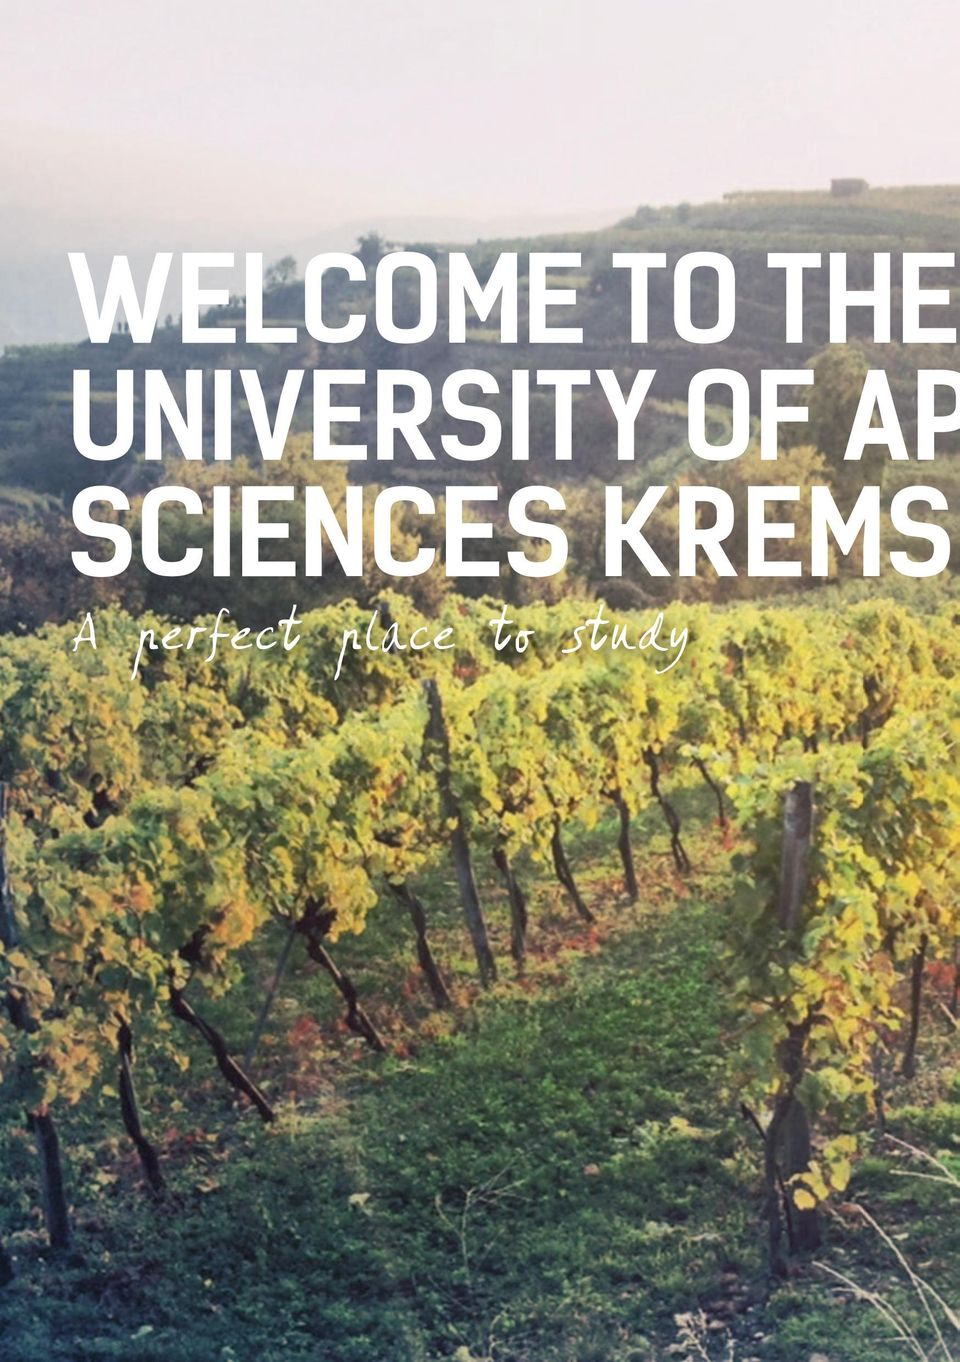 ScienceS krems A